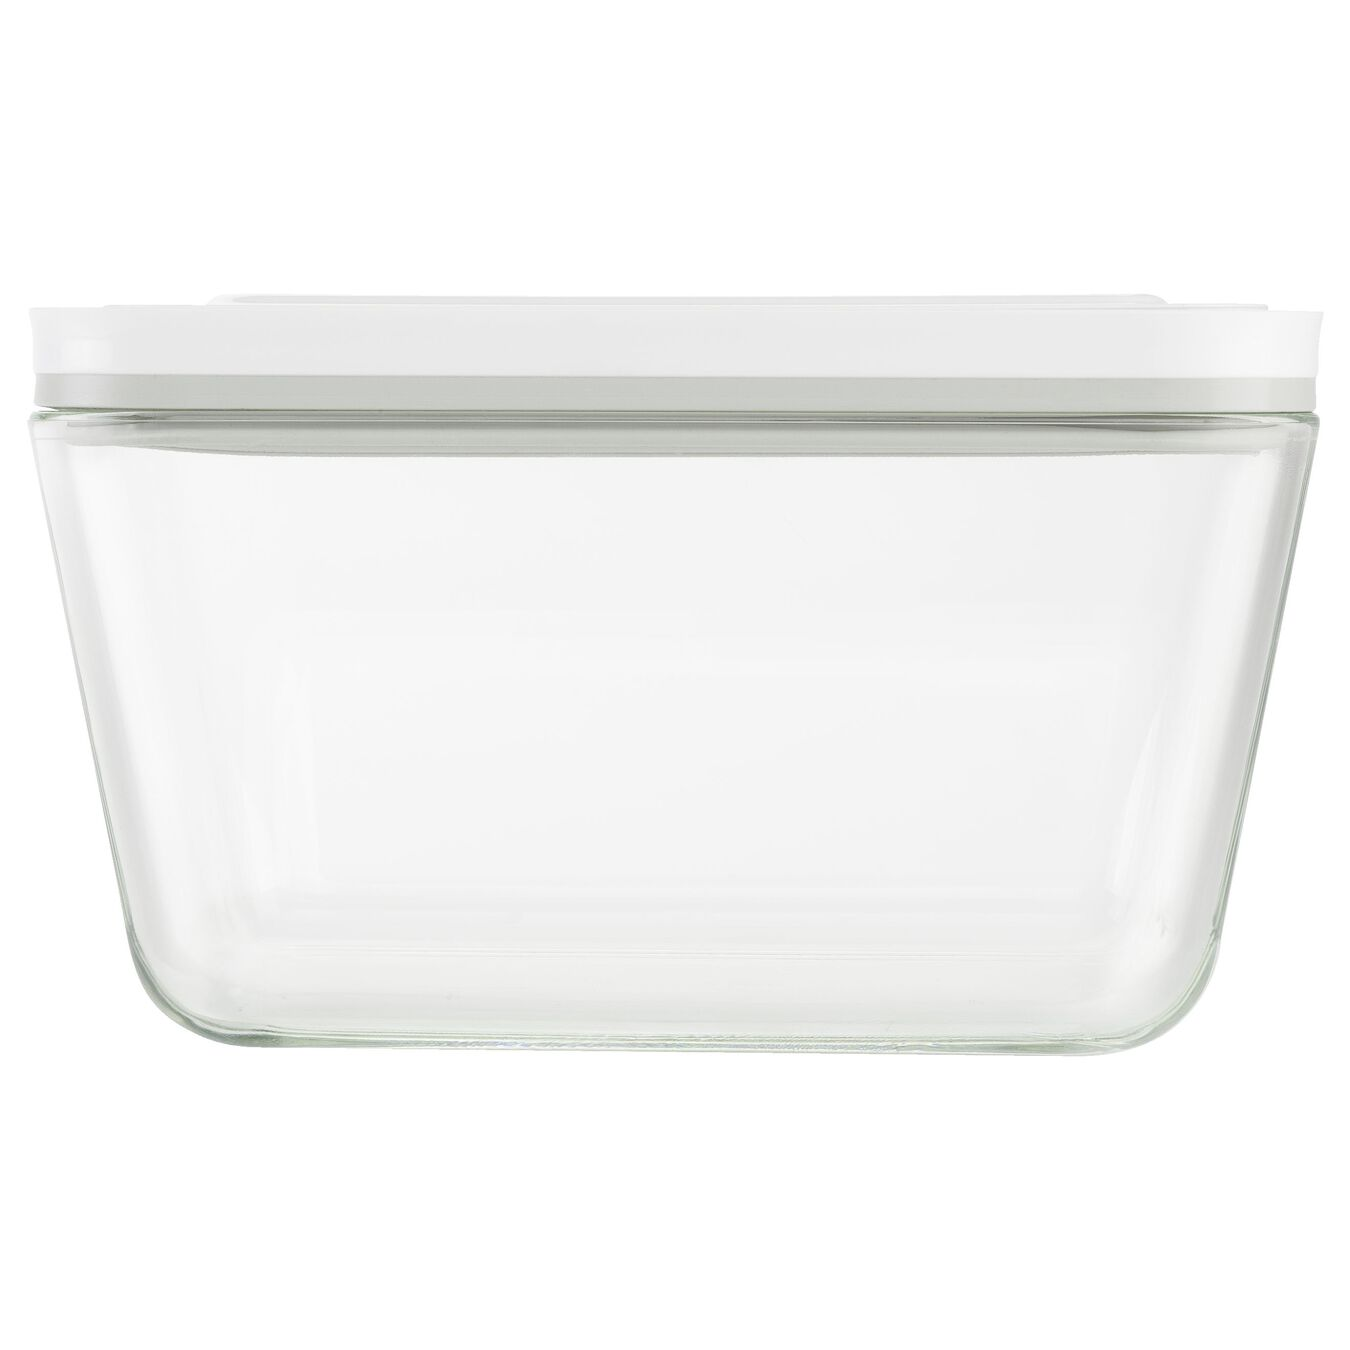 Vacuum Container, large, Borosilicate glass, White,,large 3